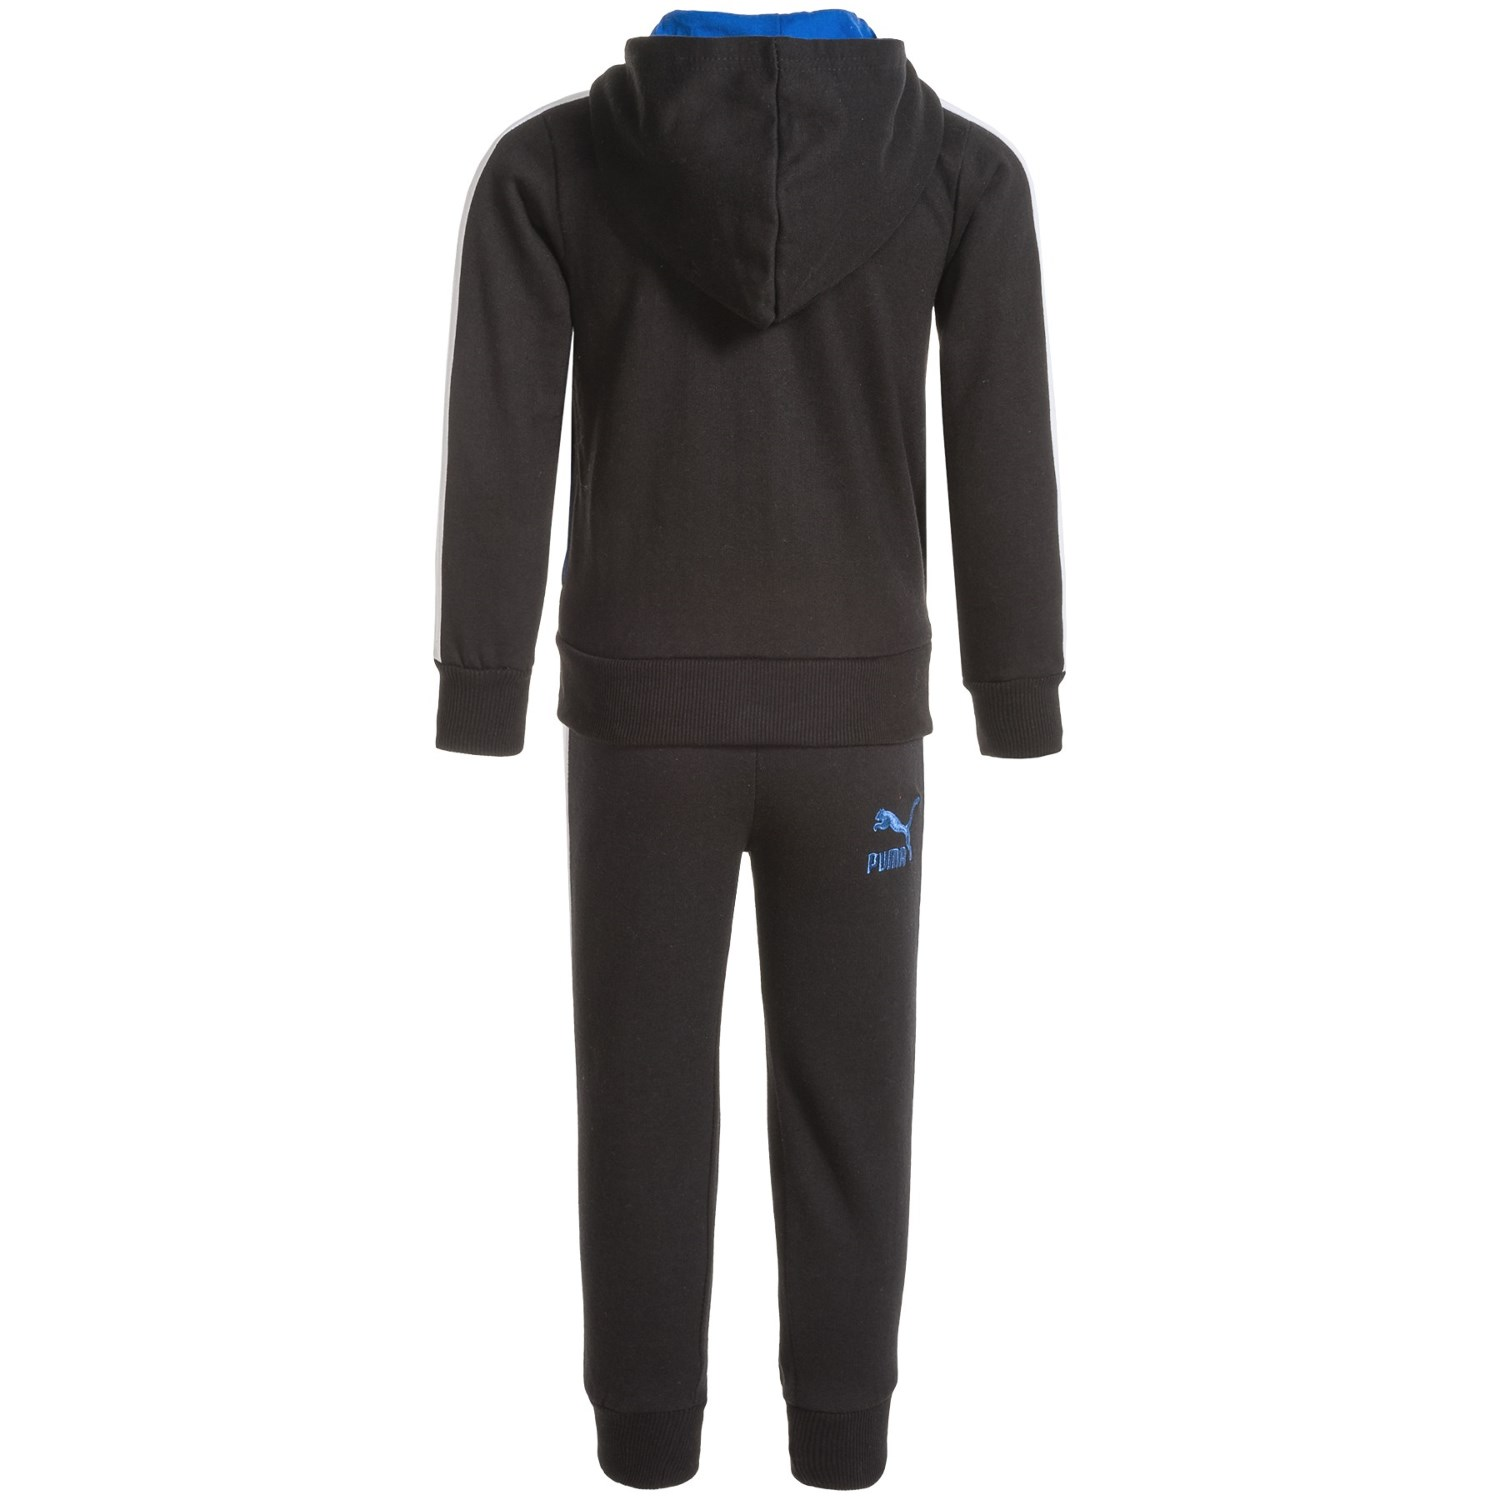 Puma Hoodie T Shirt And Pants Set For Toddlers Save 69